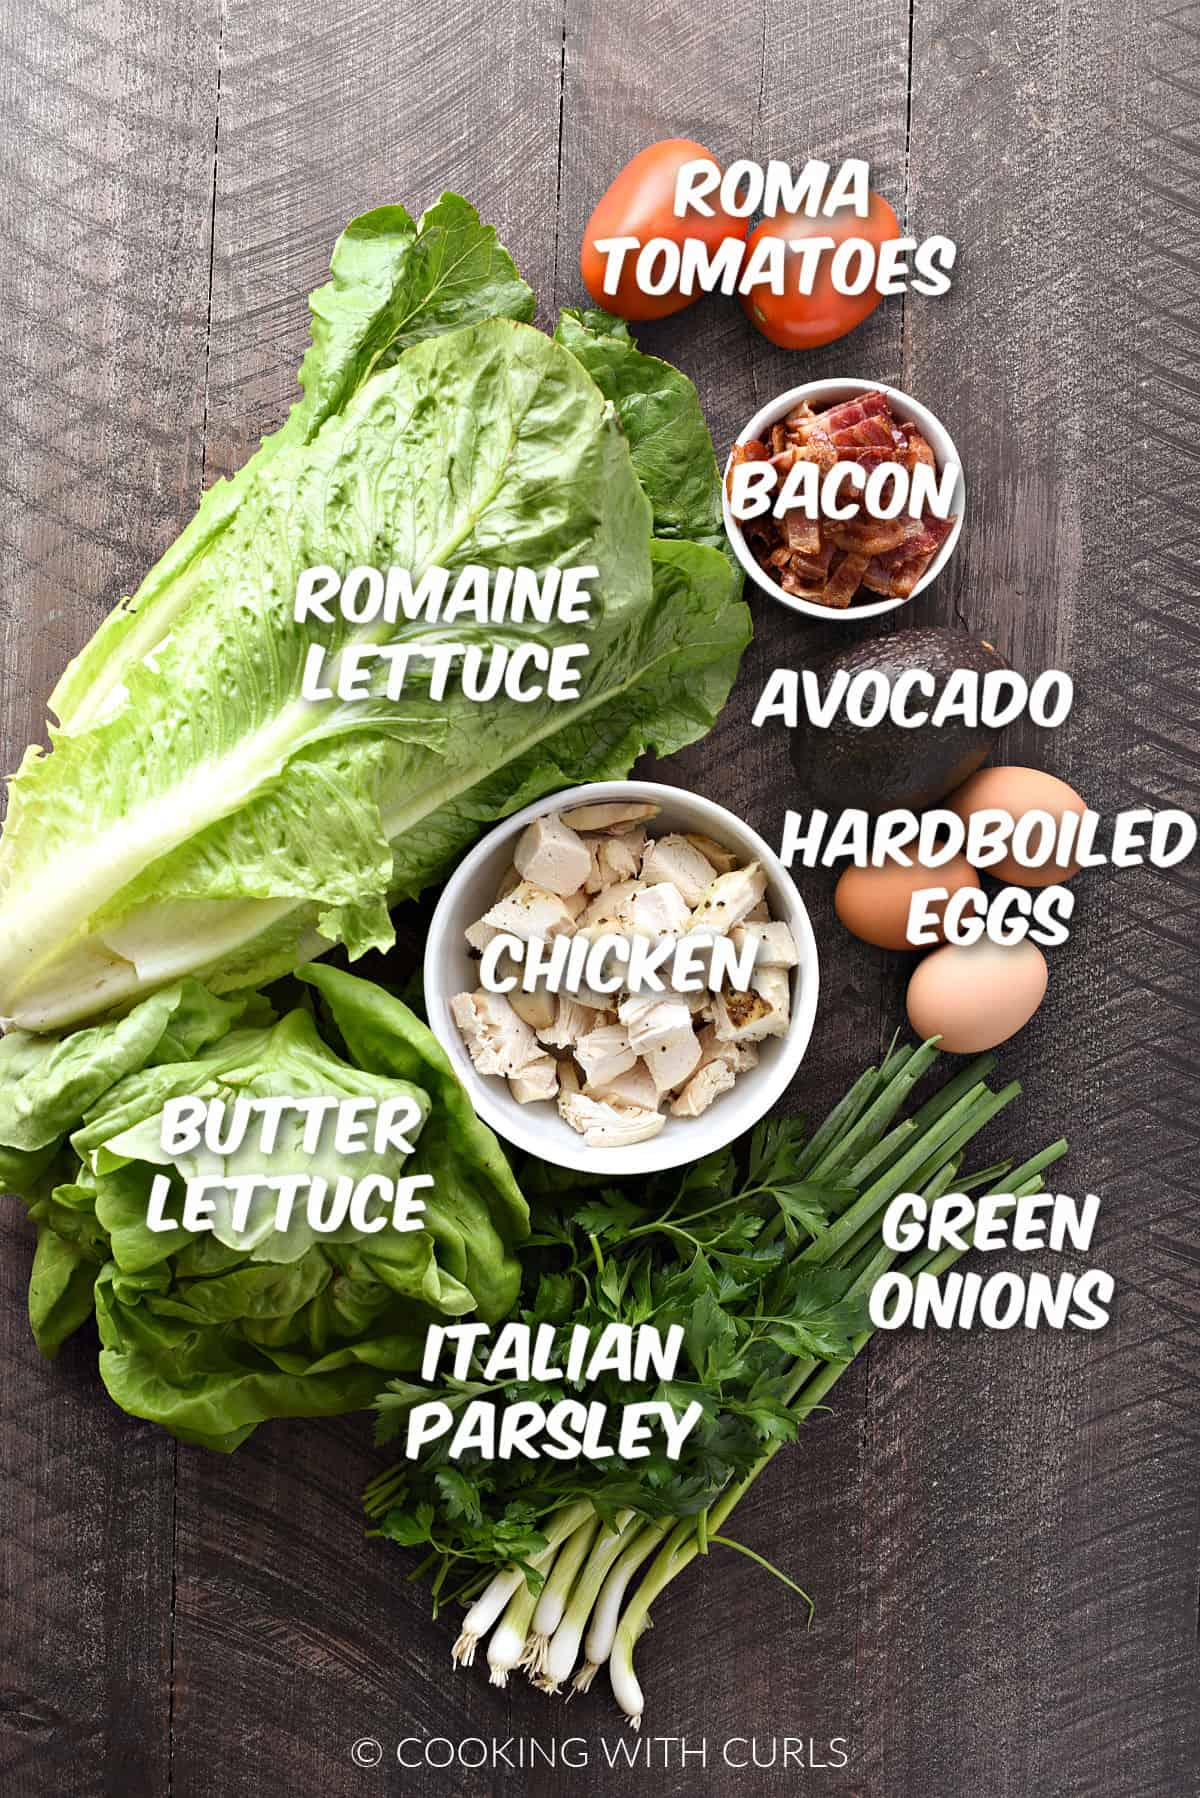 A head of romaine and butter lettuces, chopped chicken, two Roma tomatoes, an avocado, three hard boiled eggs, green onions, and Italian parsley.